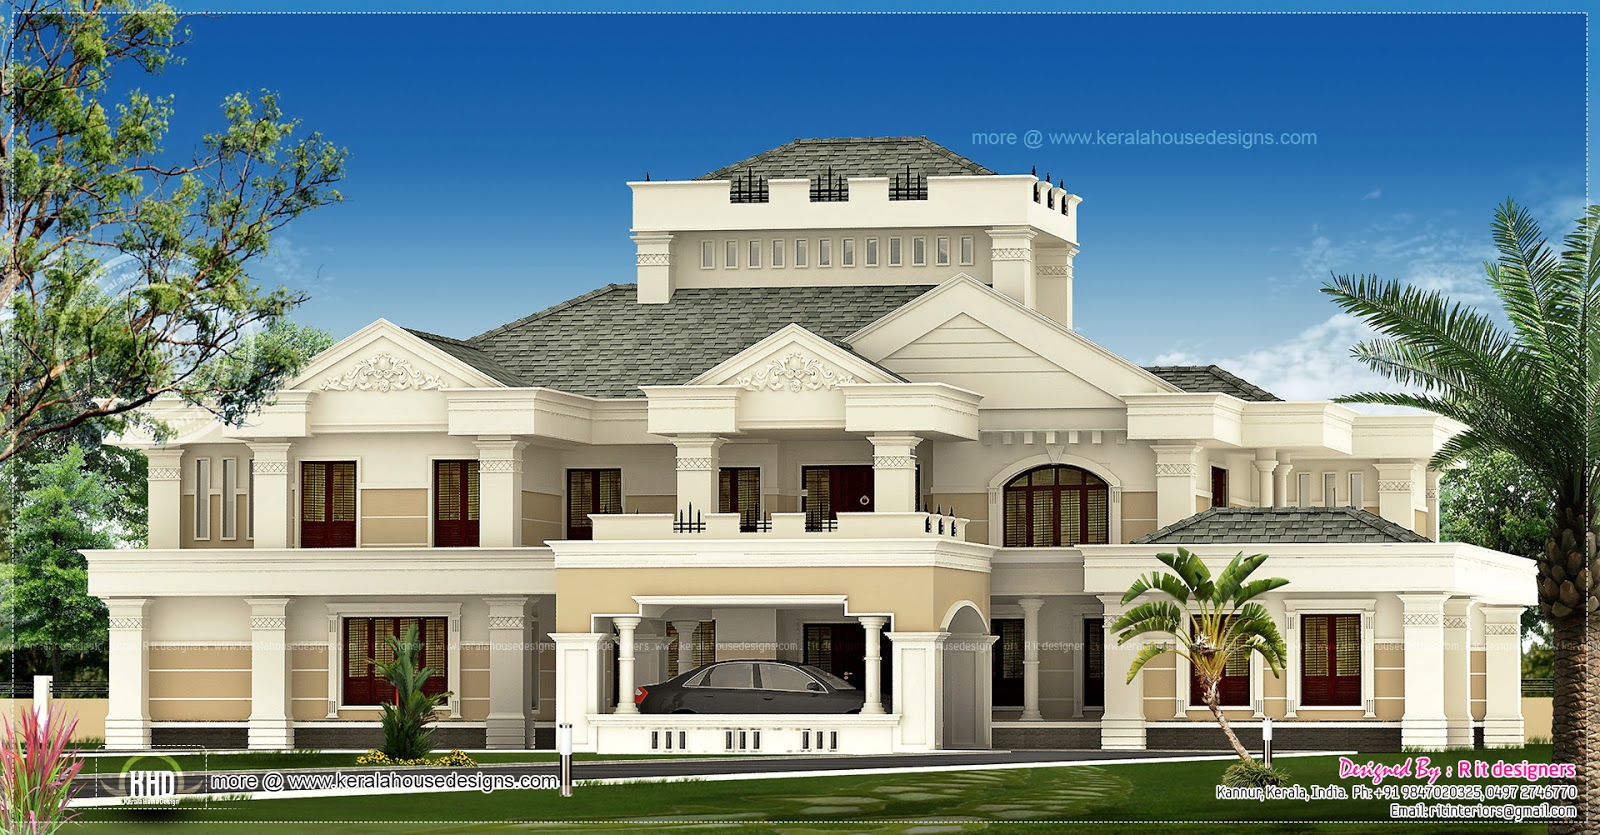 Super luxury kerala house exterior house design plans for Award winning house designs in india